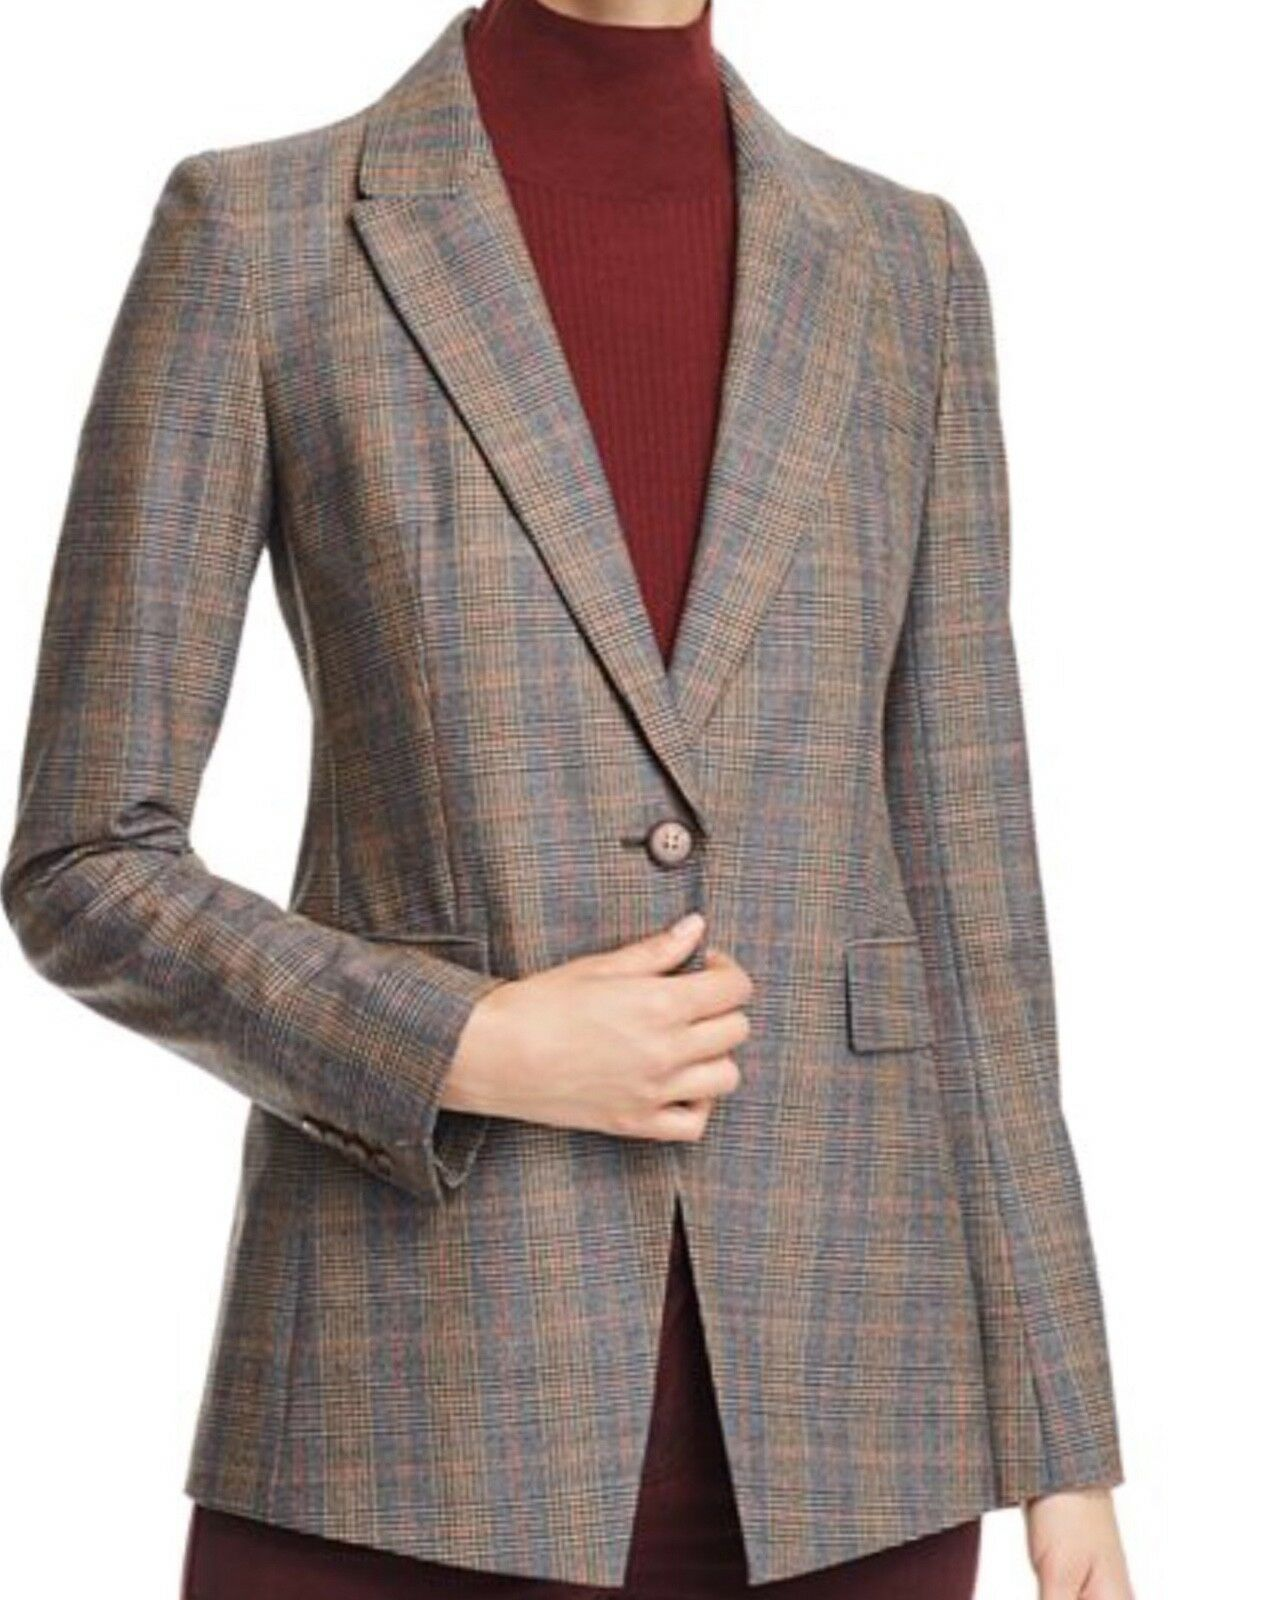 Lafayette 148 New YorkHeather Glen Plaid Blazer Size10 multicolord mainly brown